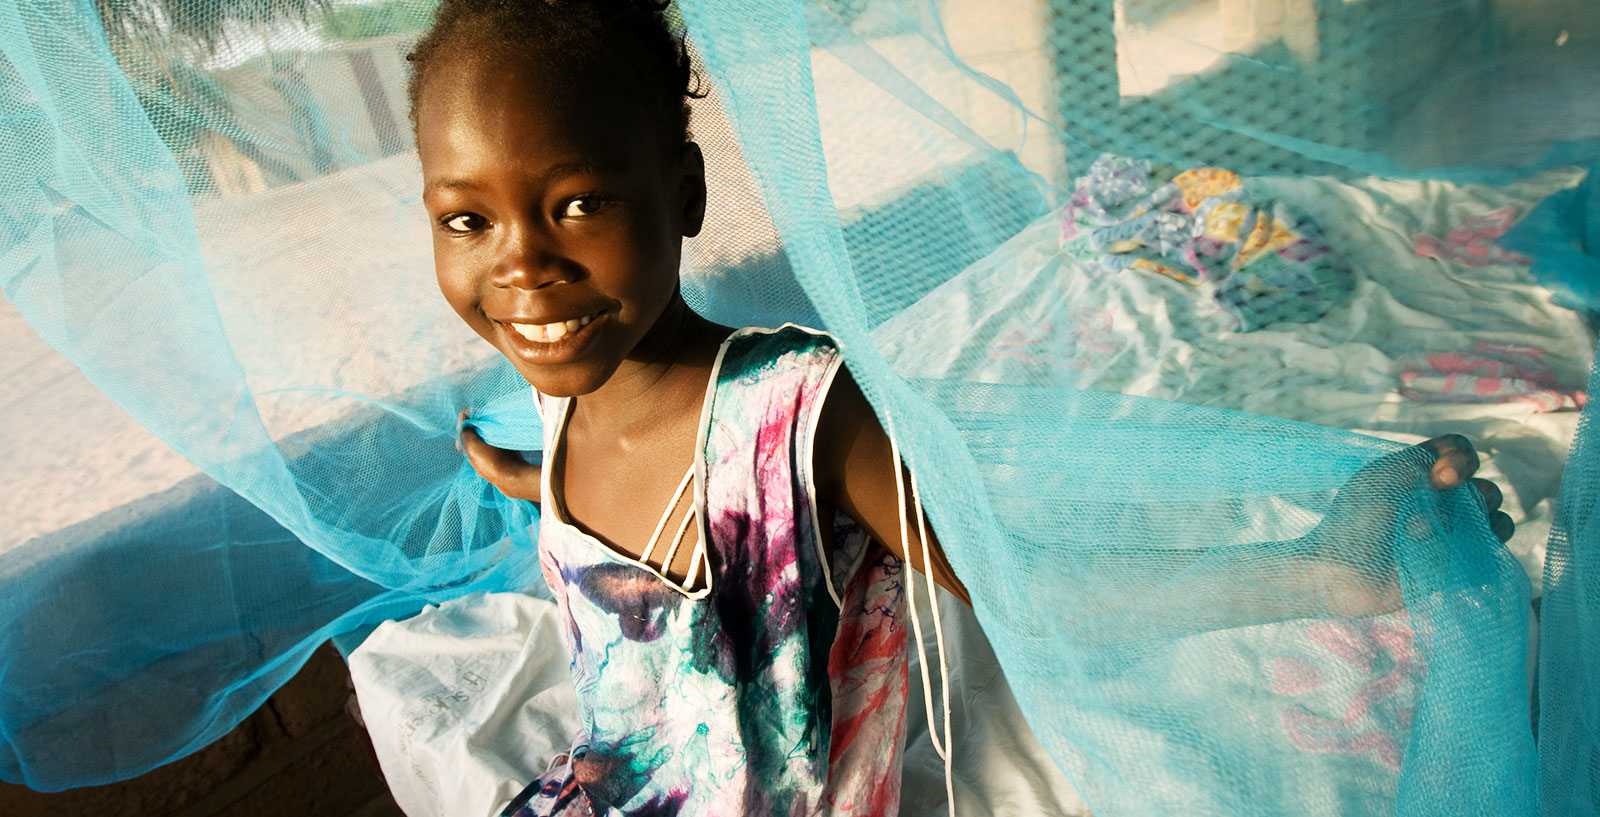 Children are one of the groups most suscepitble to malaria